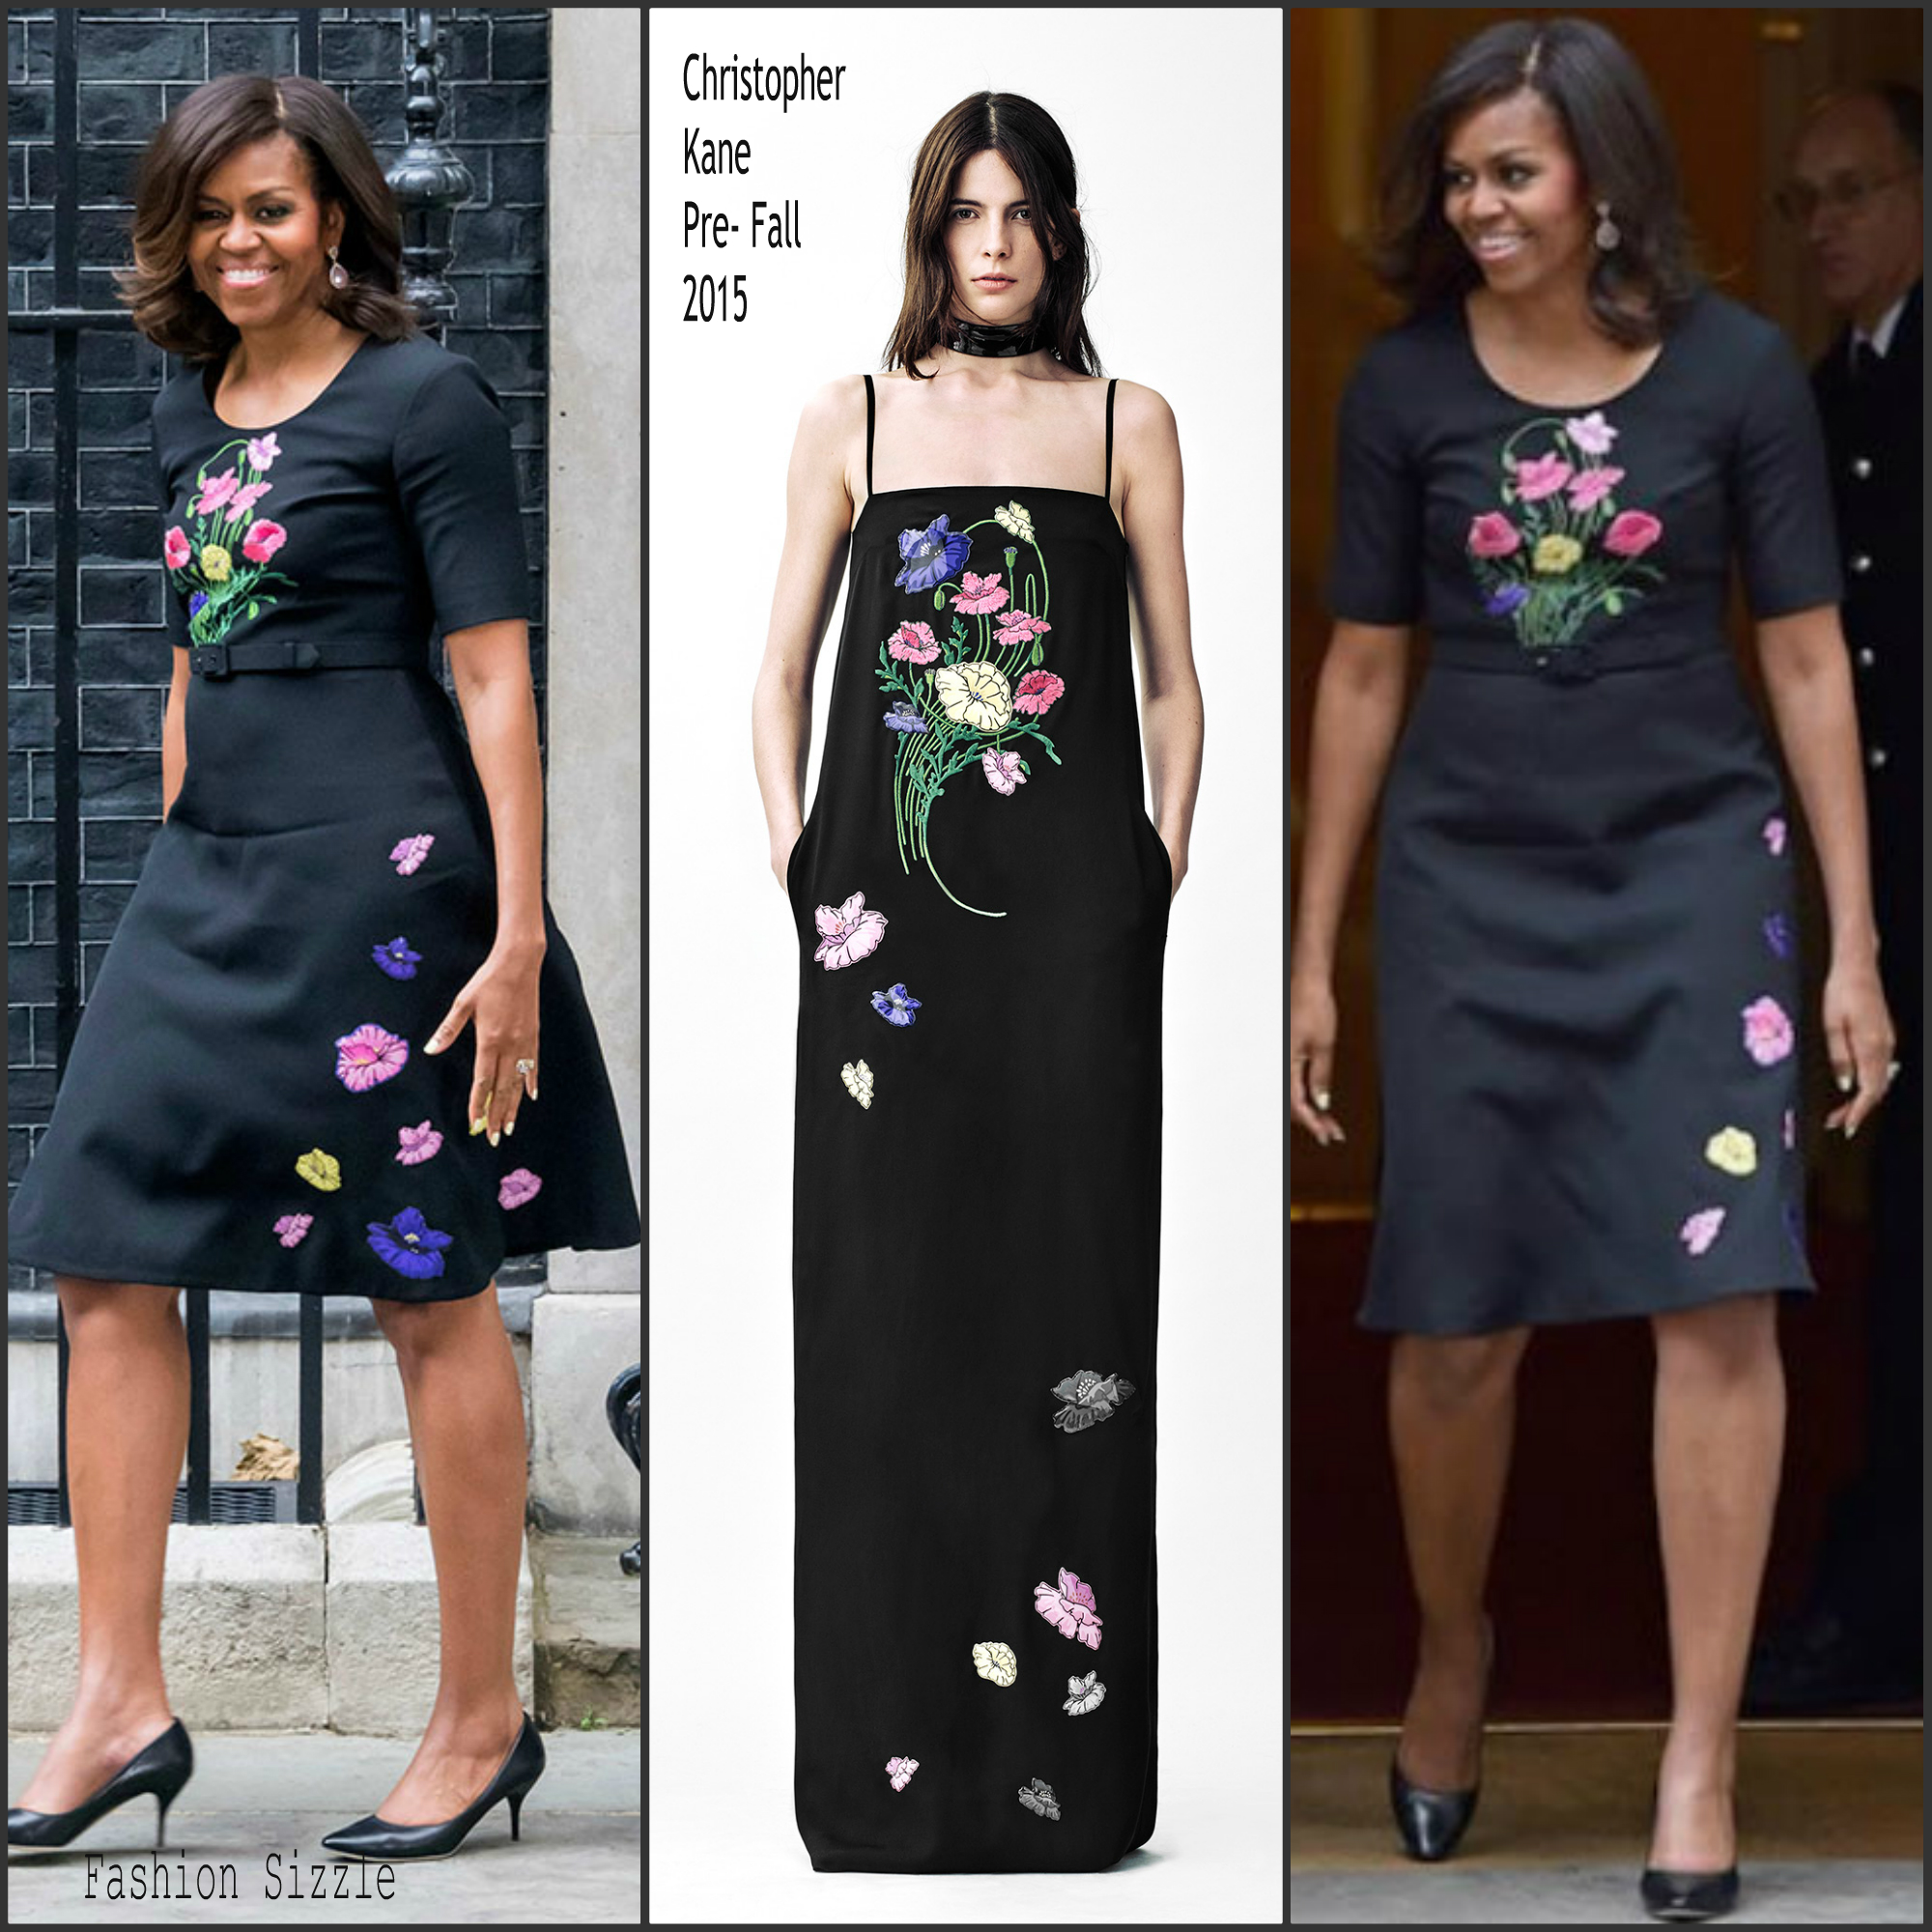 michelle-obama-in-christopher-kane-out-in-london